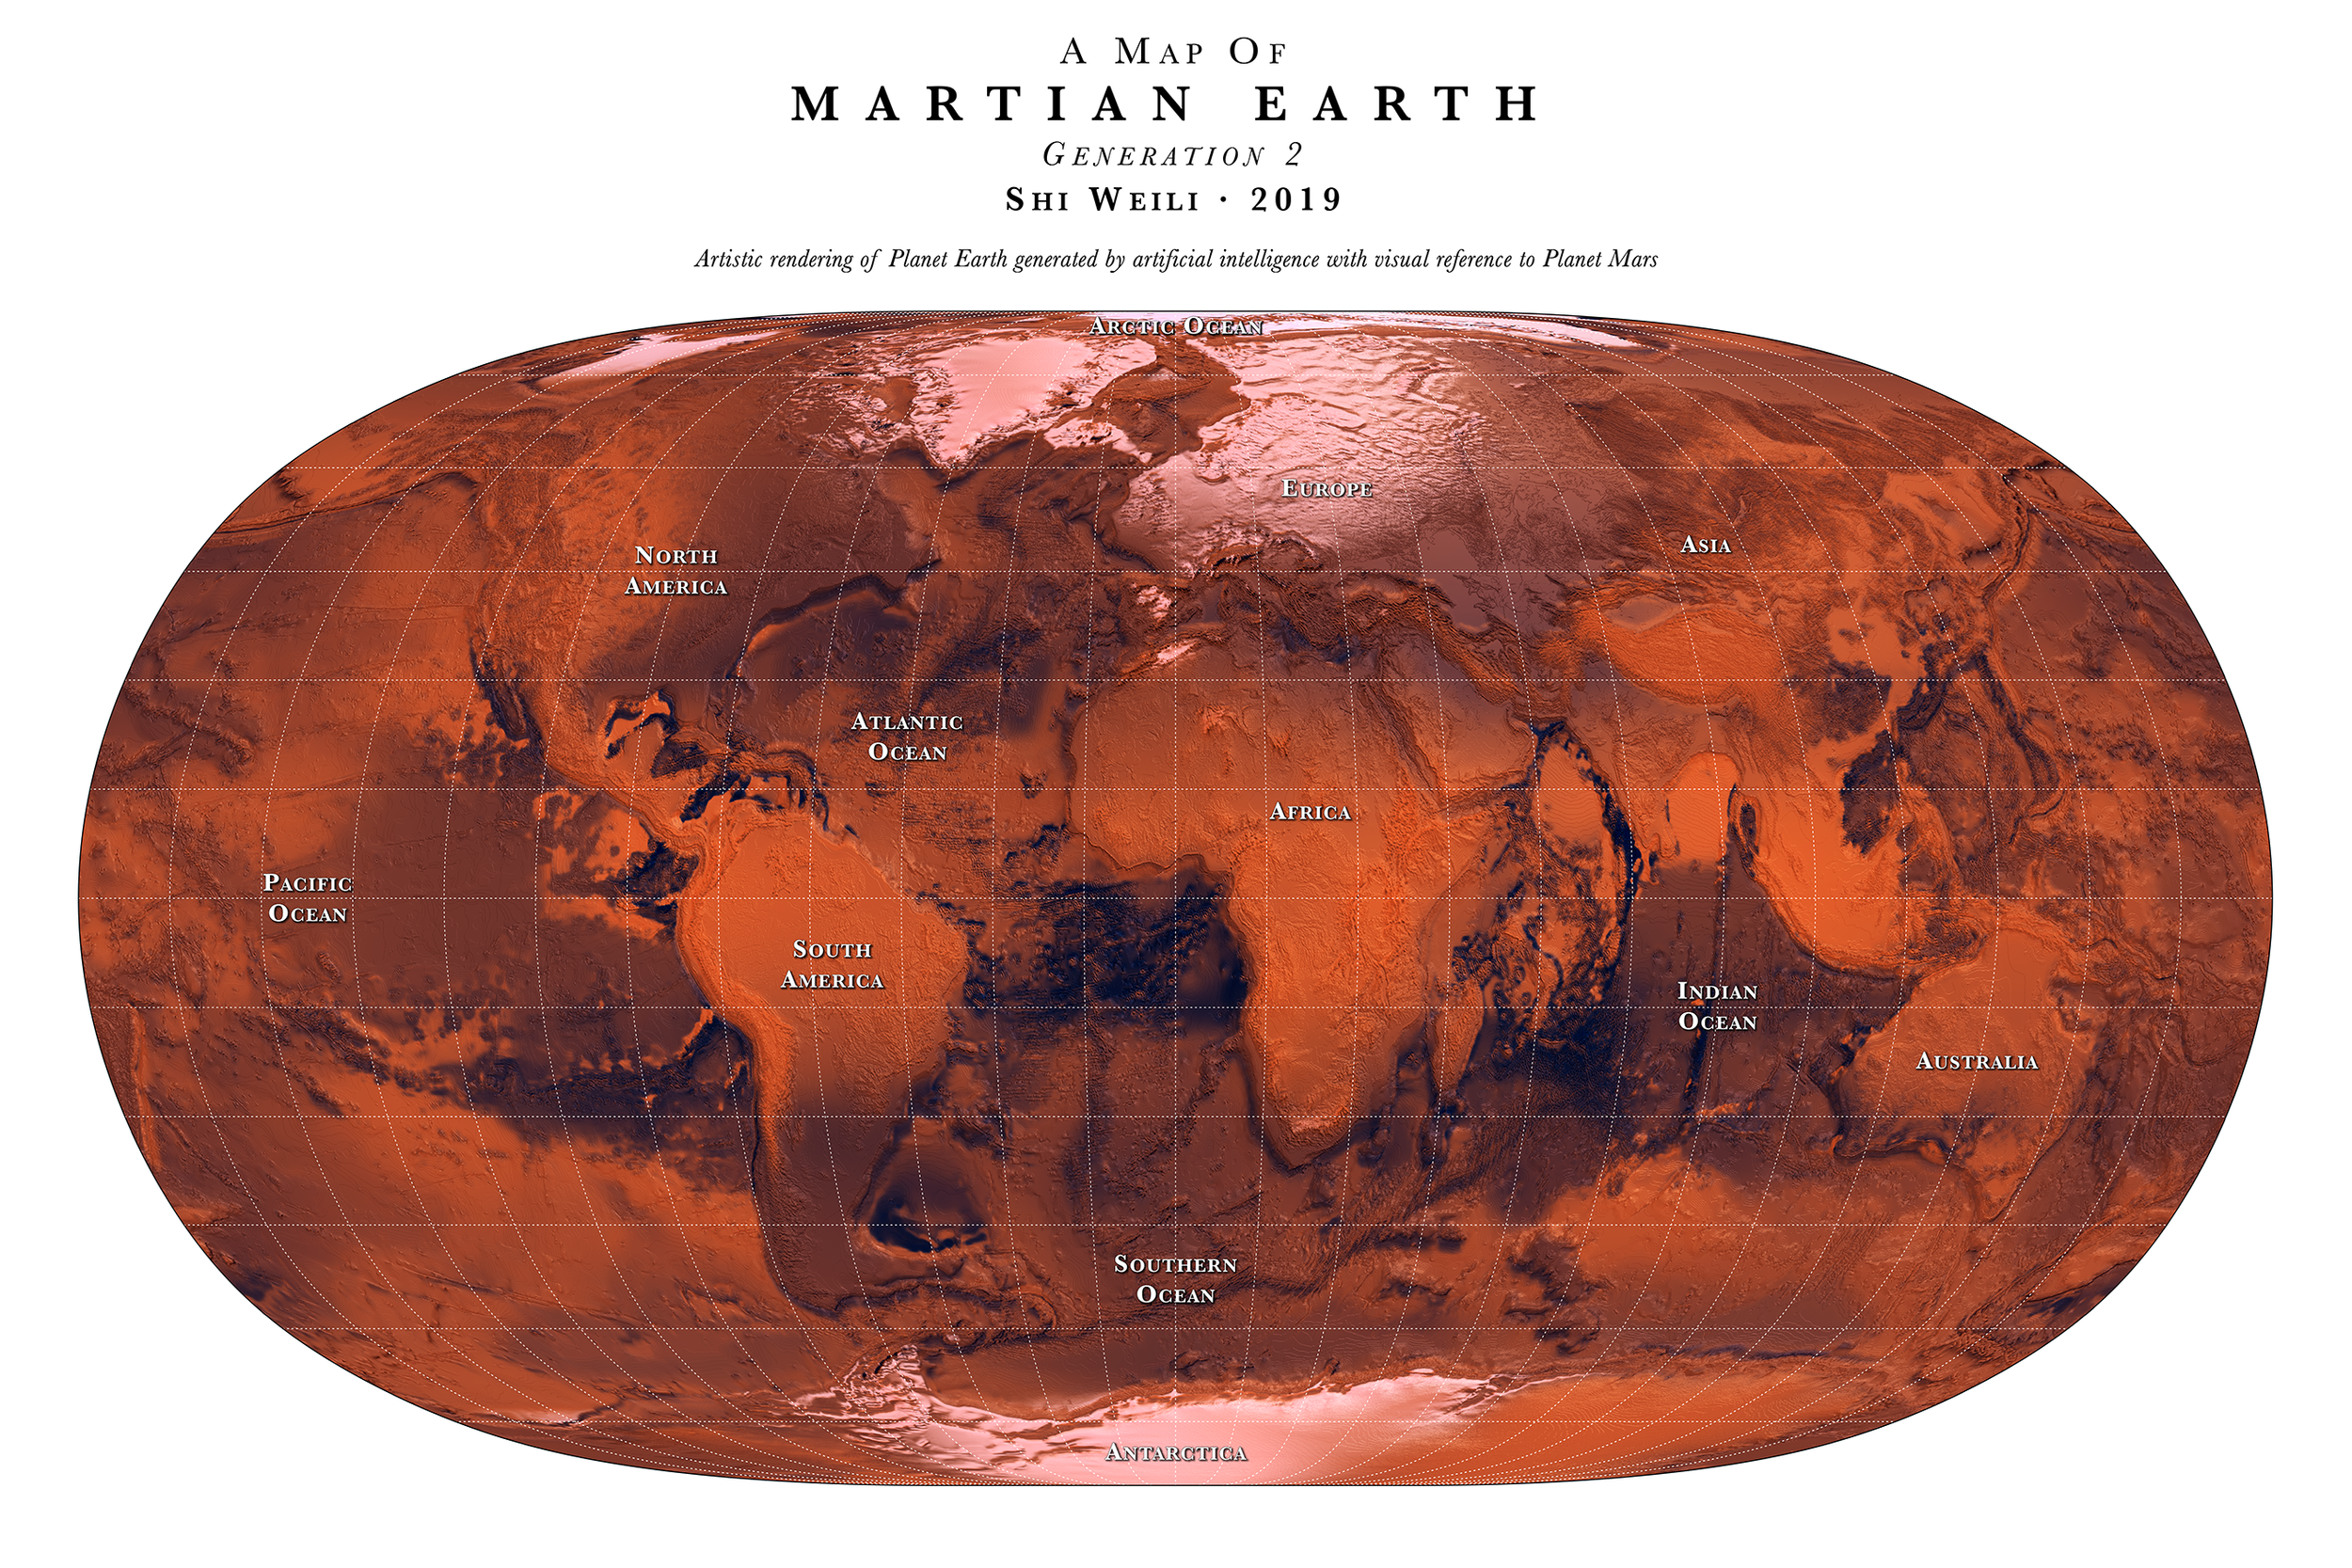 A Map of  Martian Earth  Generation 2  2019.